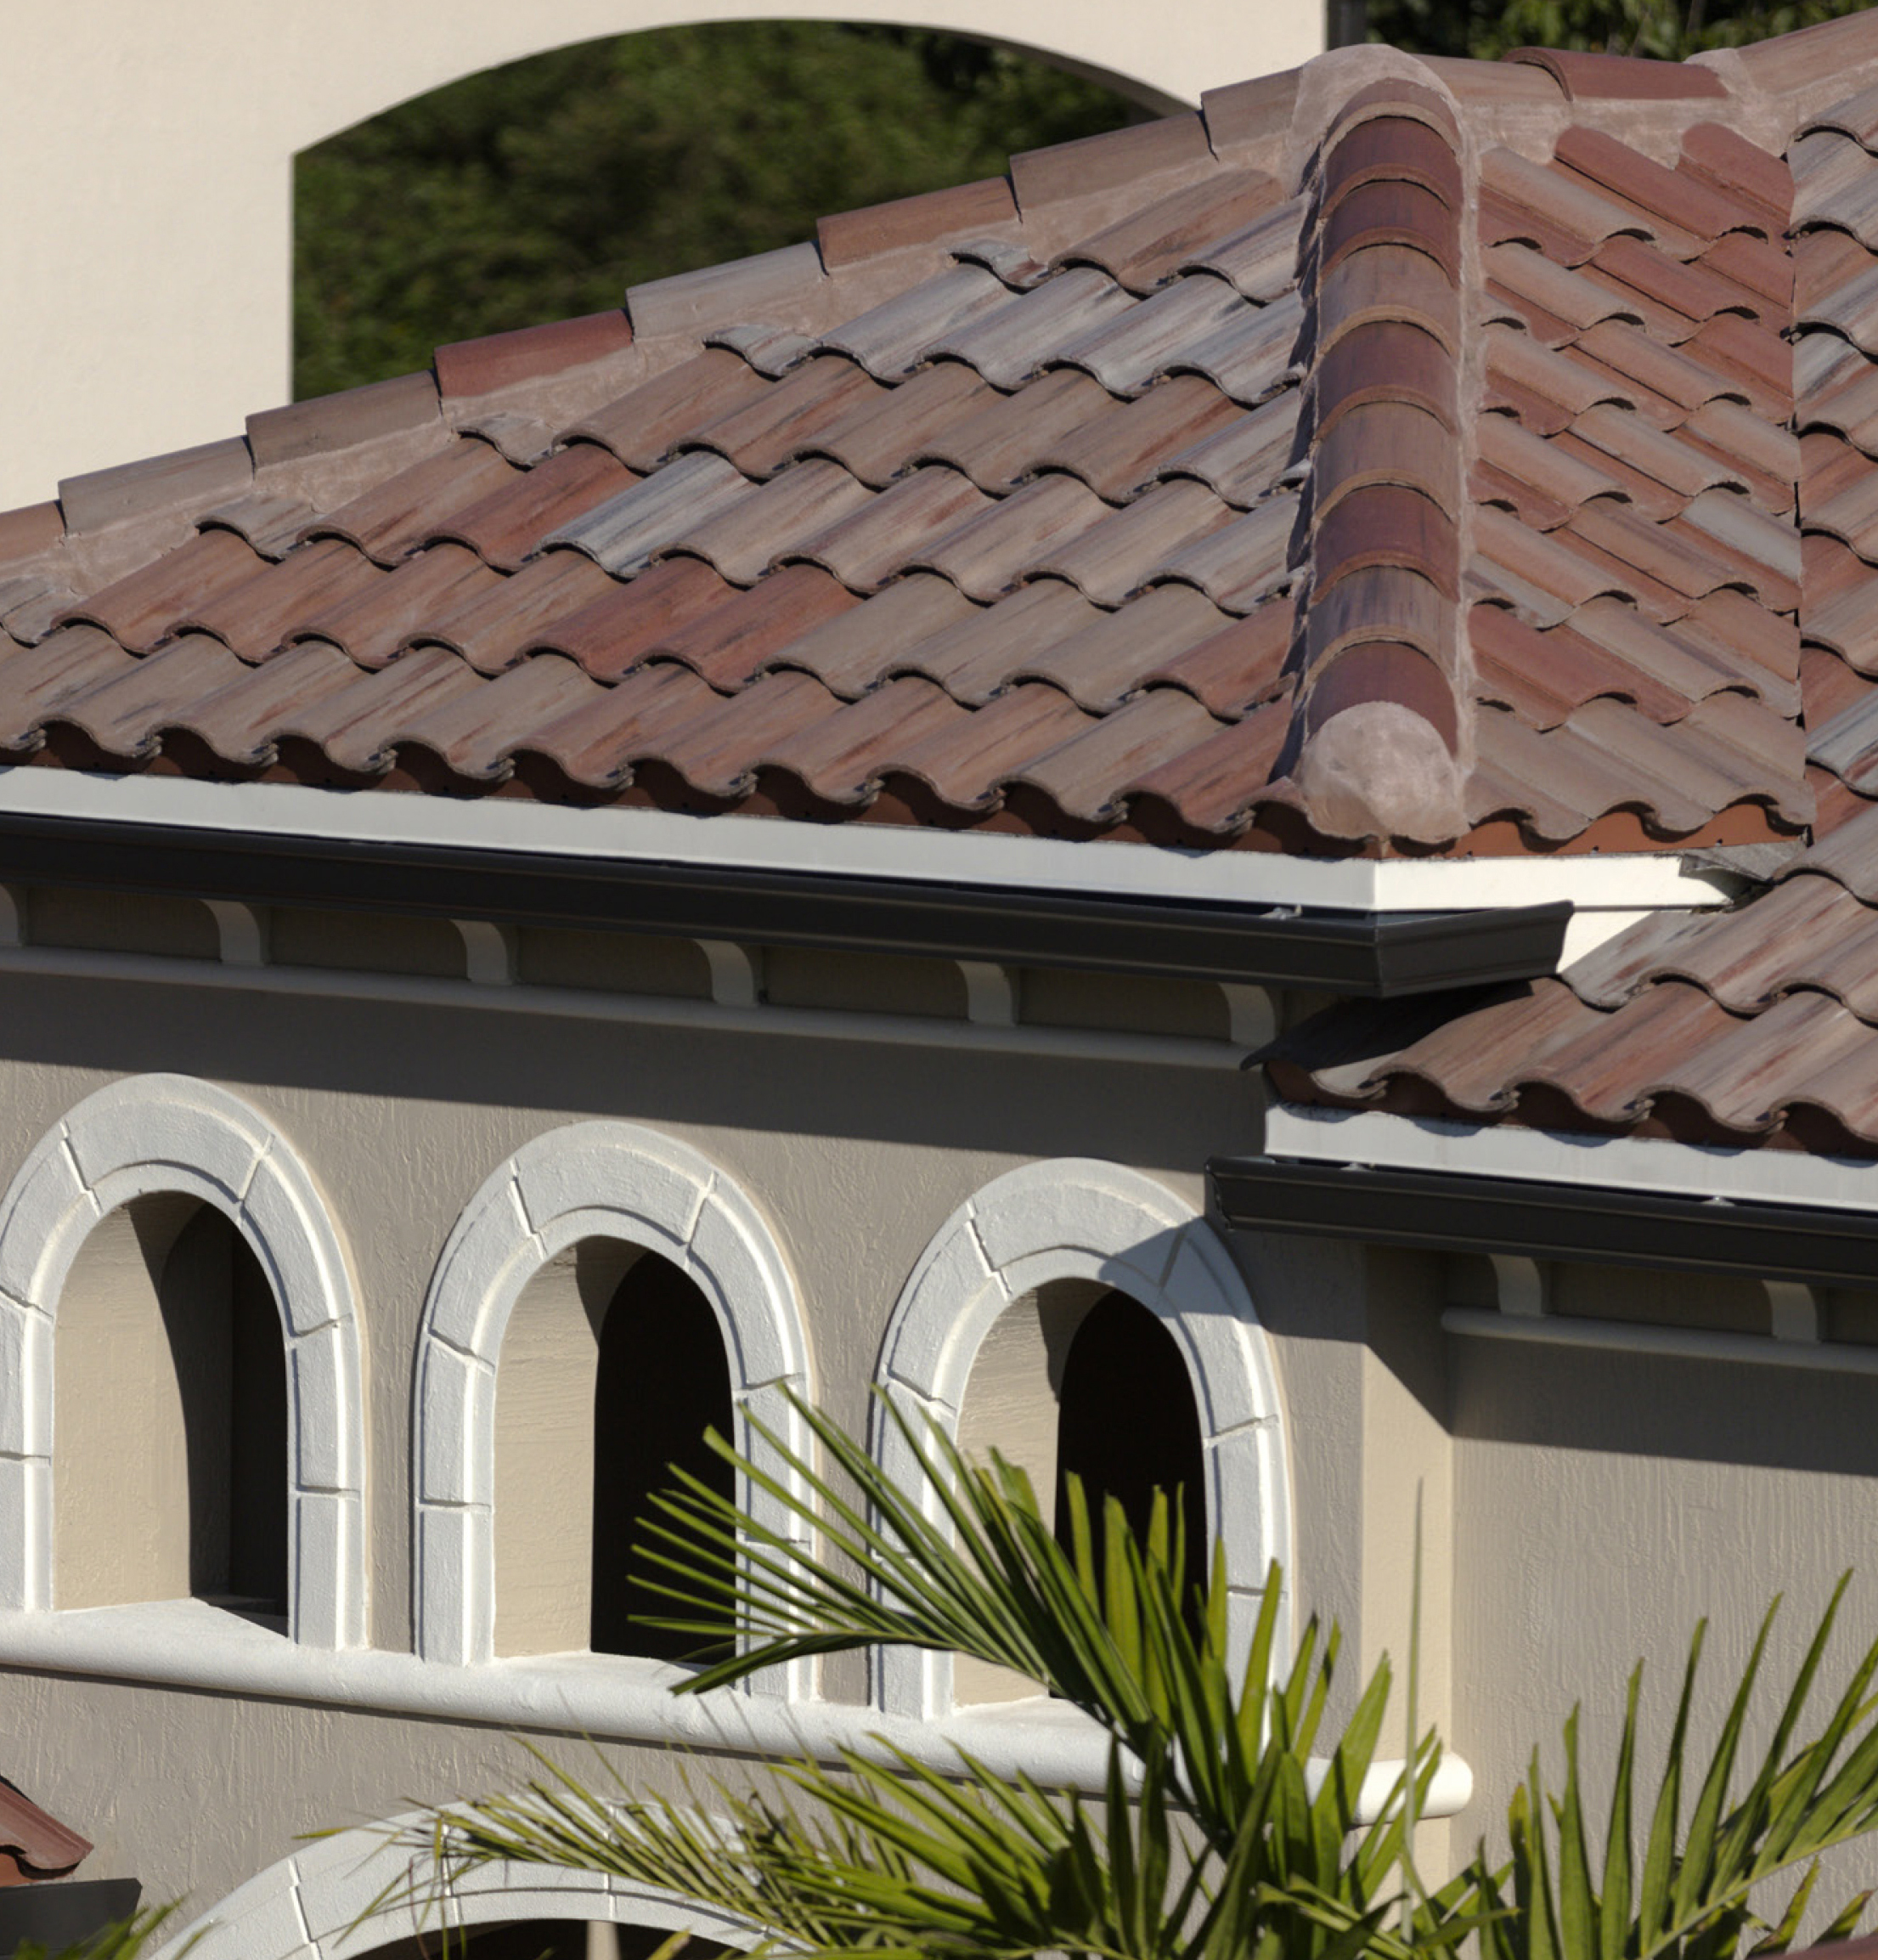 how long does a tile roof last